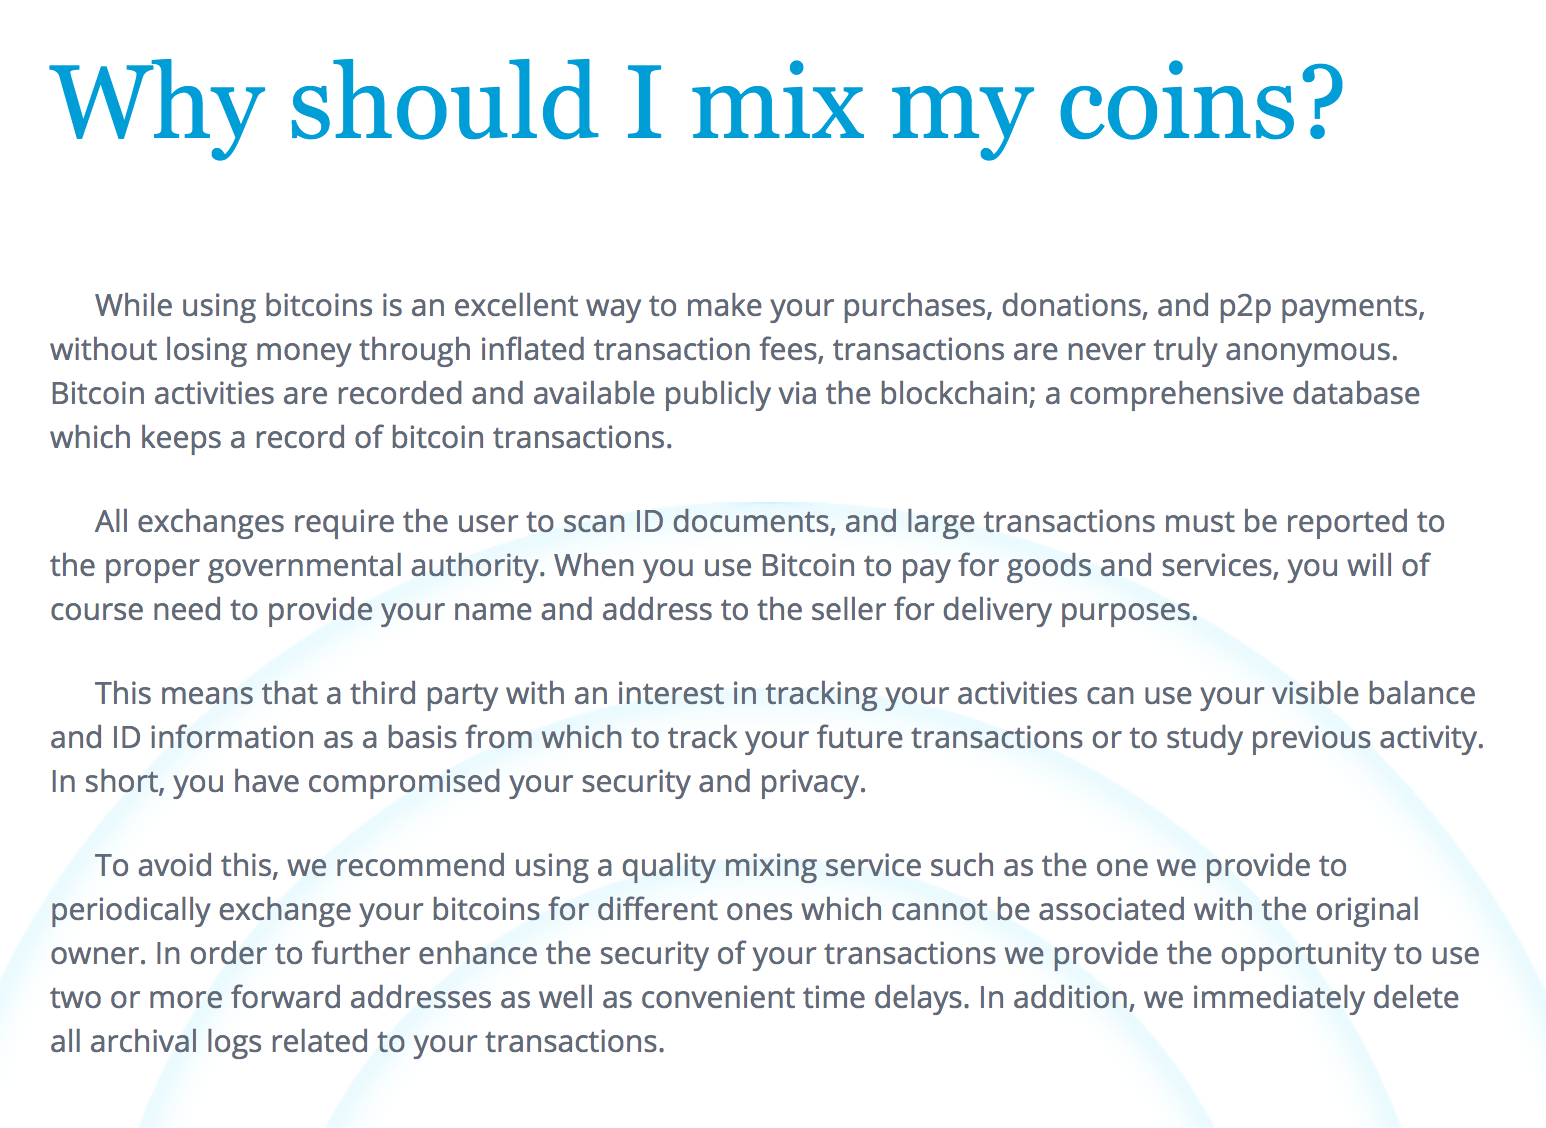 Why should I mix my coins?